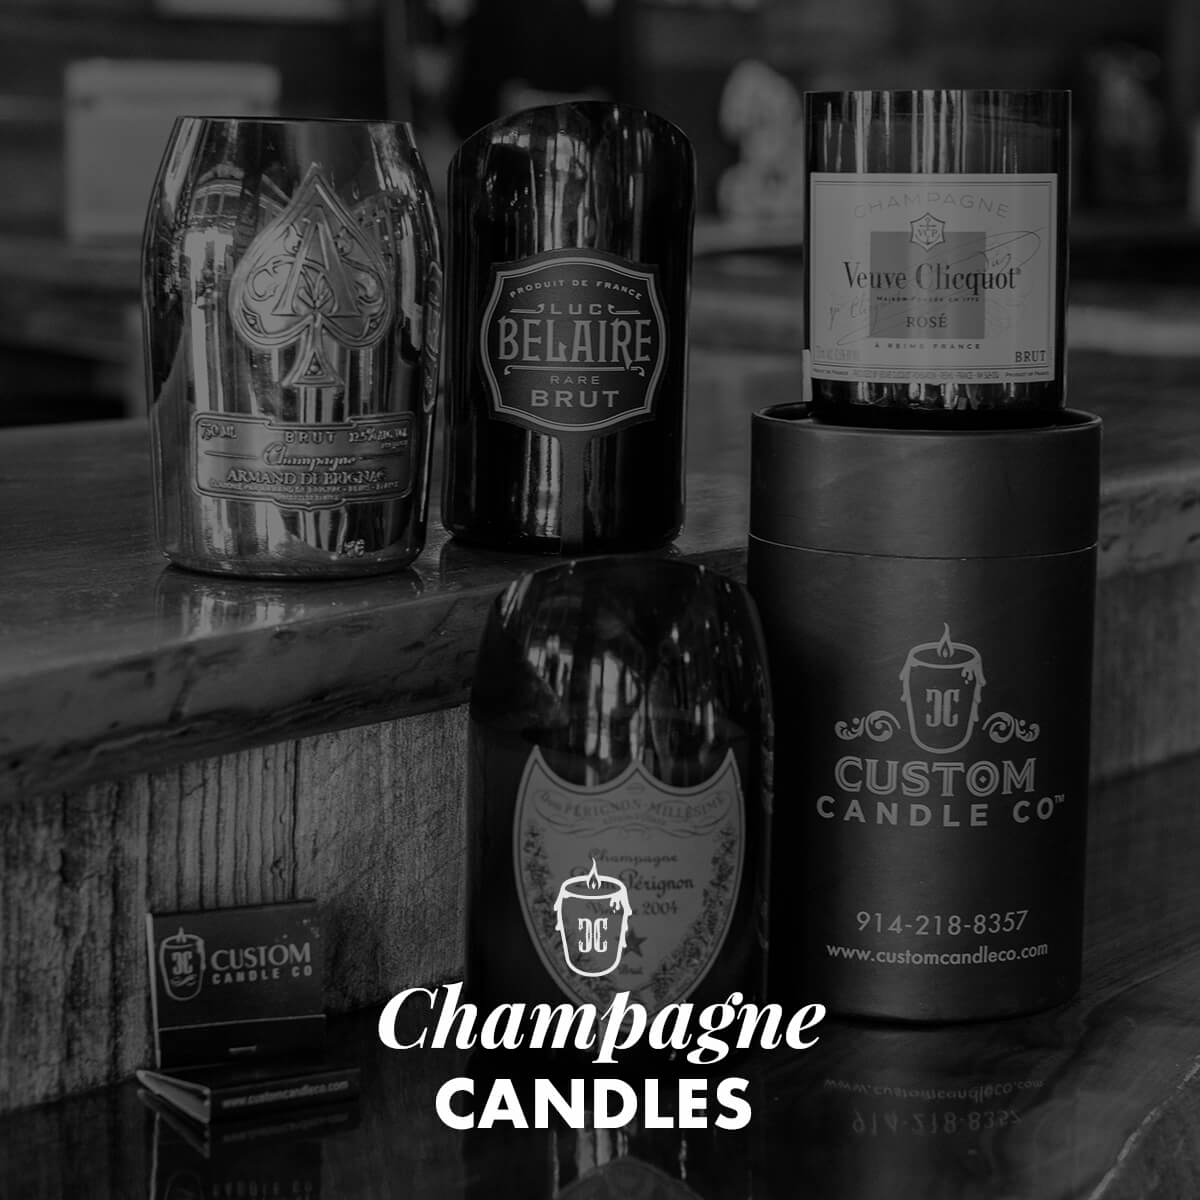 champagne-candles-customcandleco-1